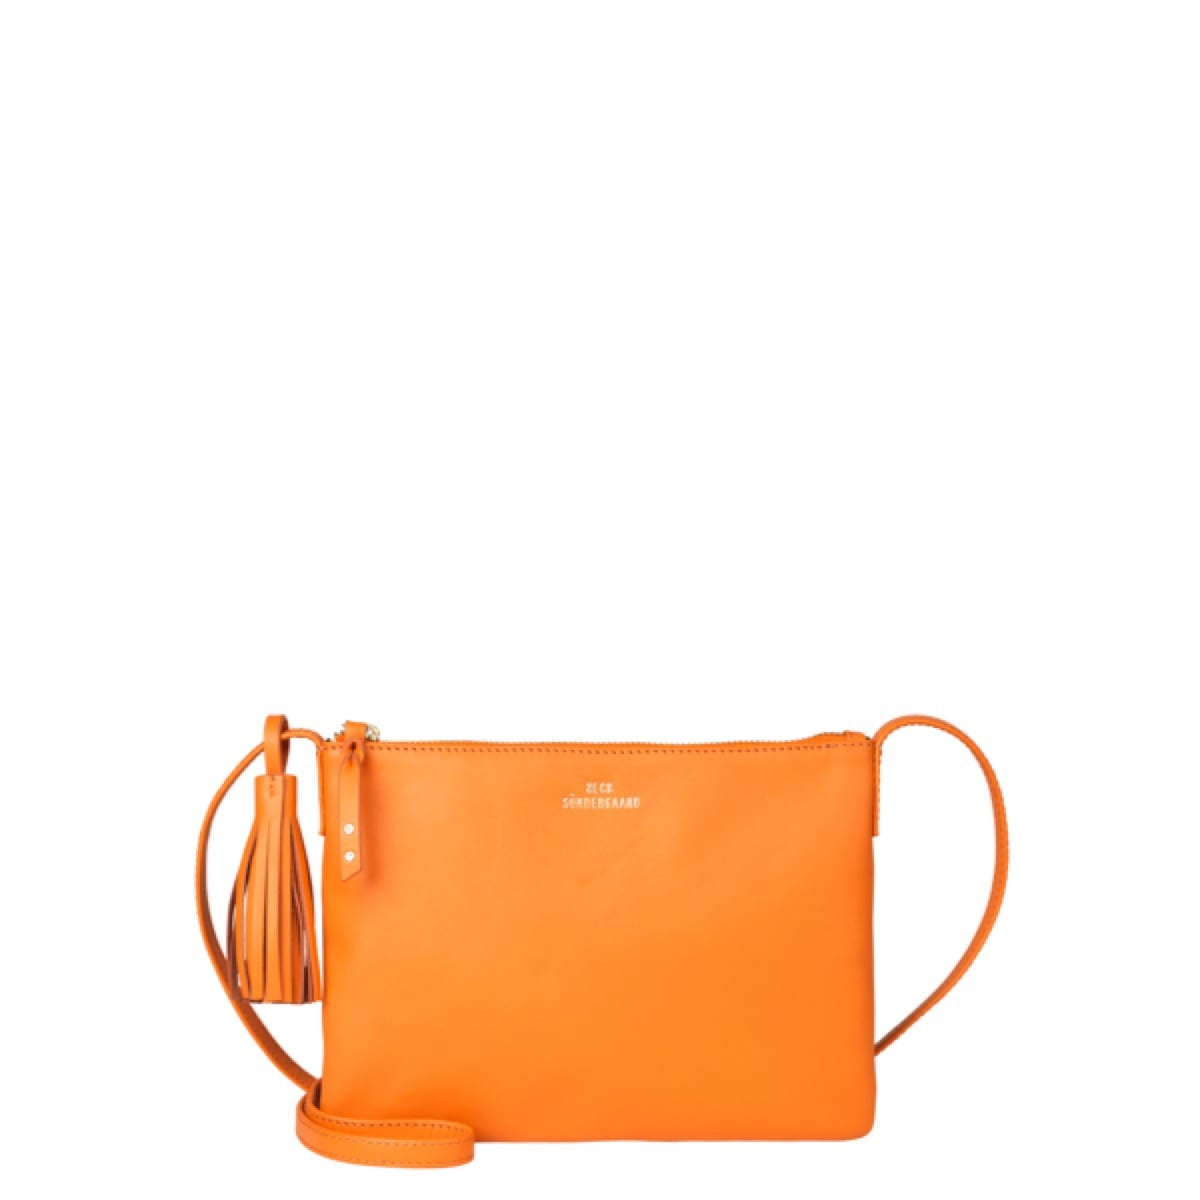 Beck Sondergaard Lymbo Leather Bag in orange